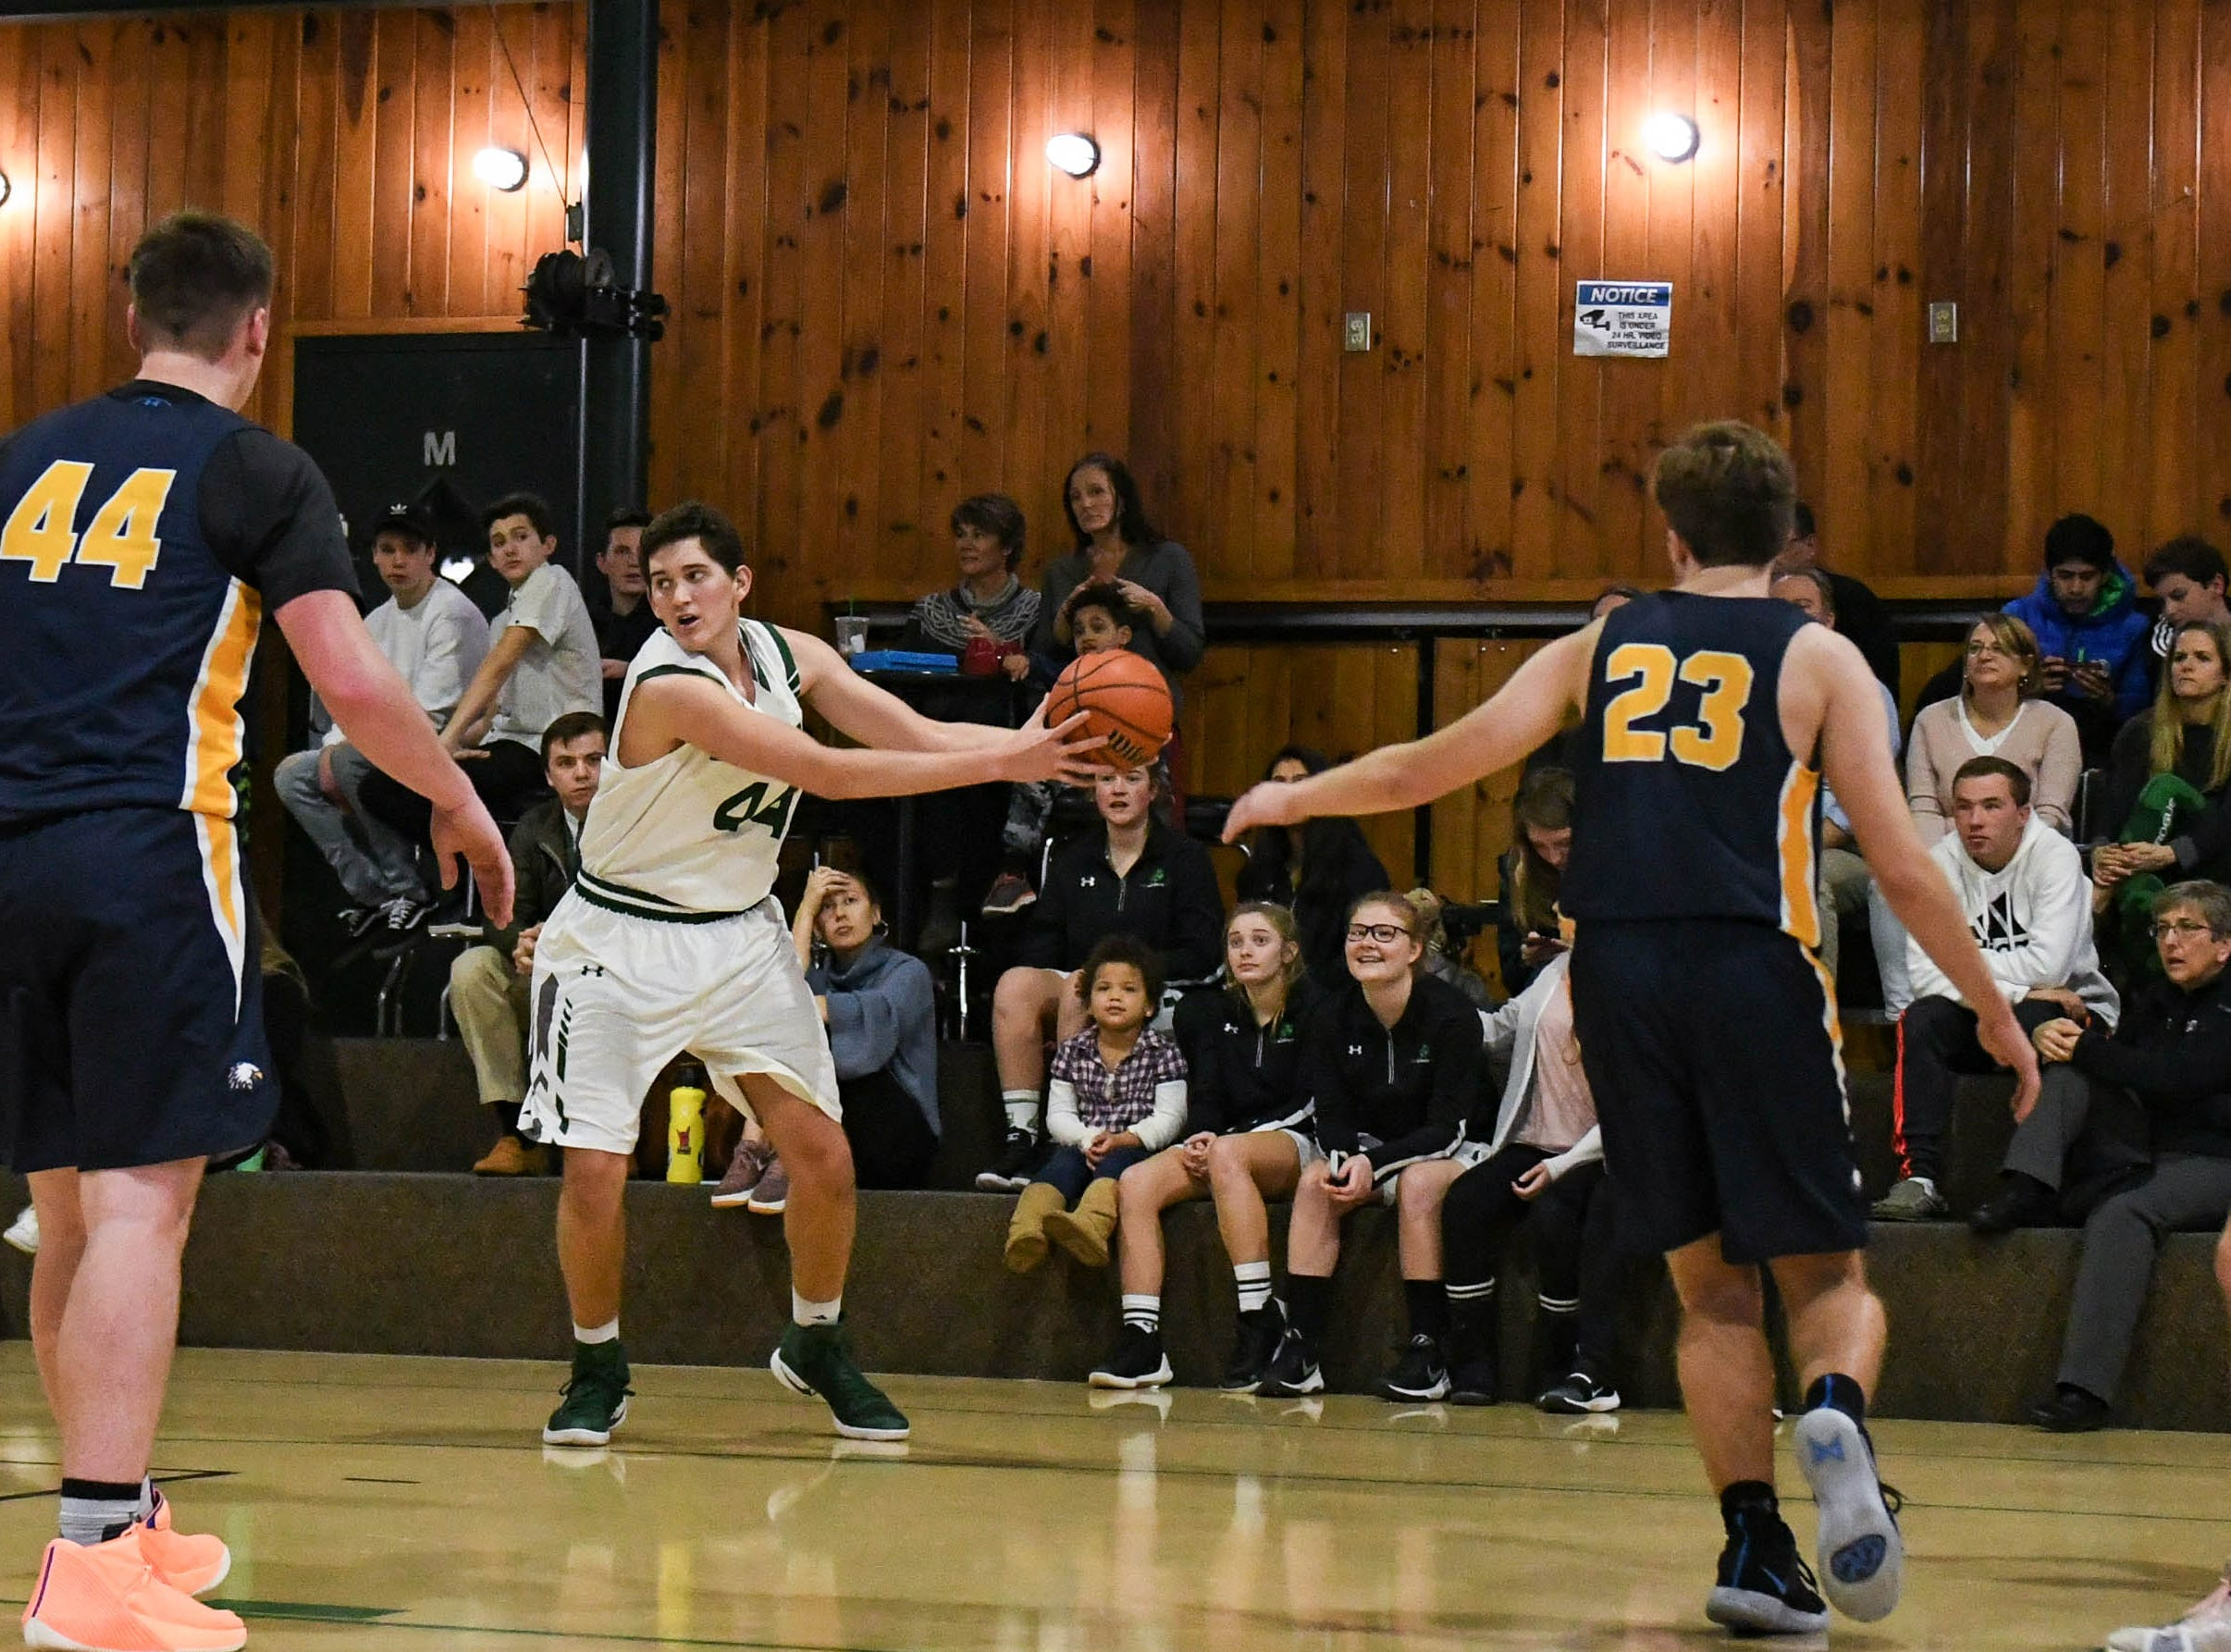 Salisbury School's Jared Vazquez (44) moves the ball against Holly Grove at The Salisbury School on Monday, Jan. 18, 2019.